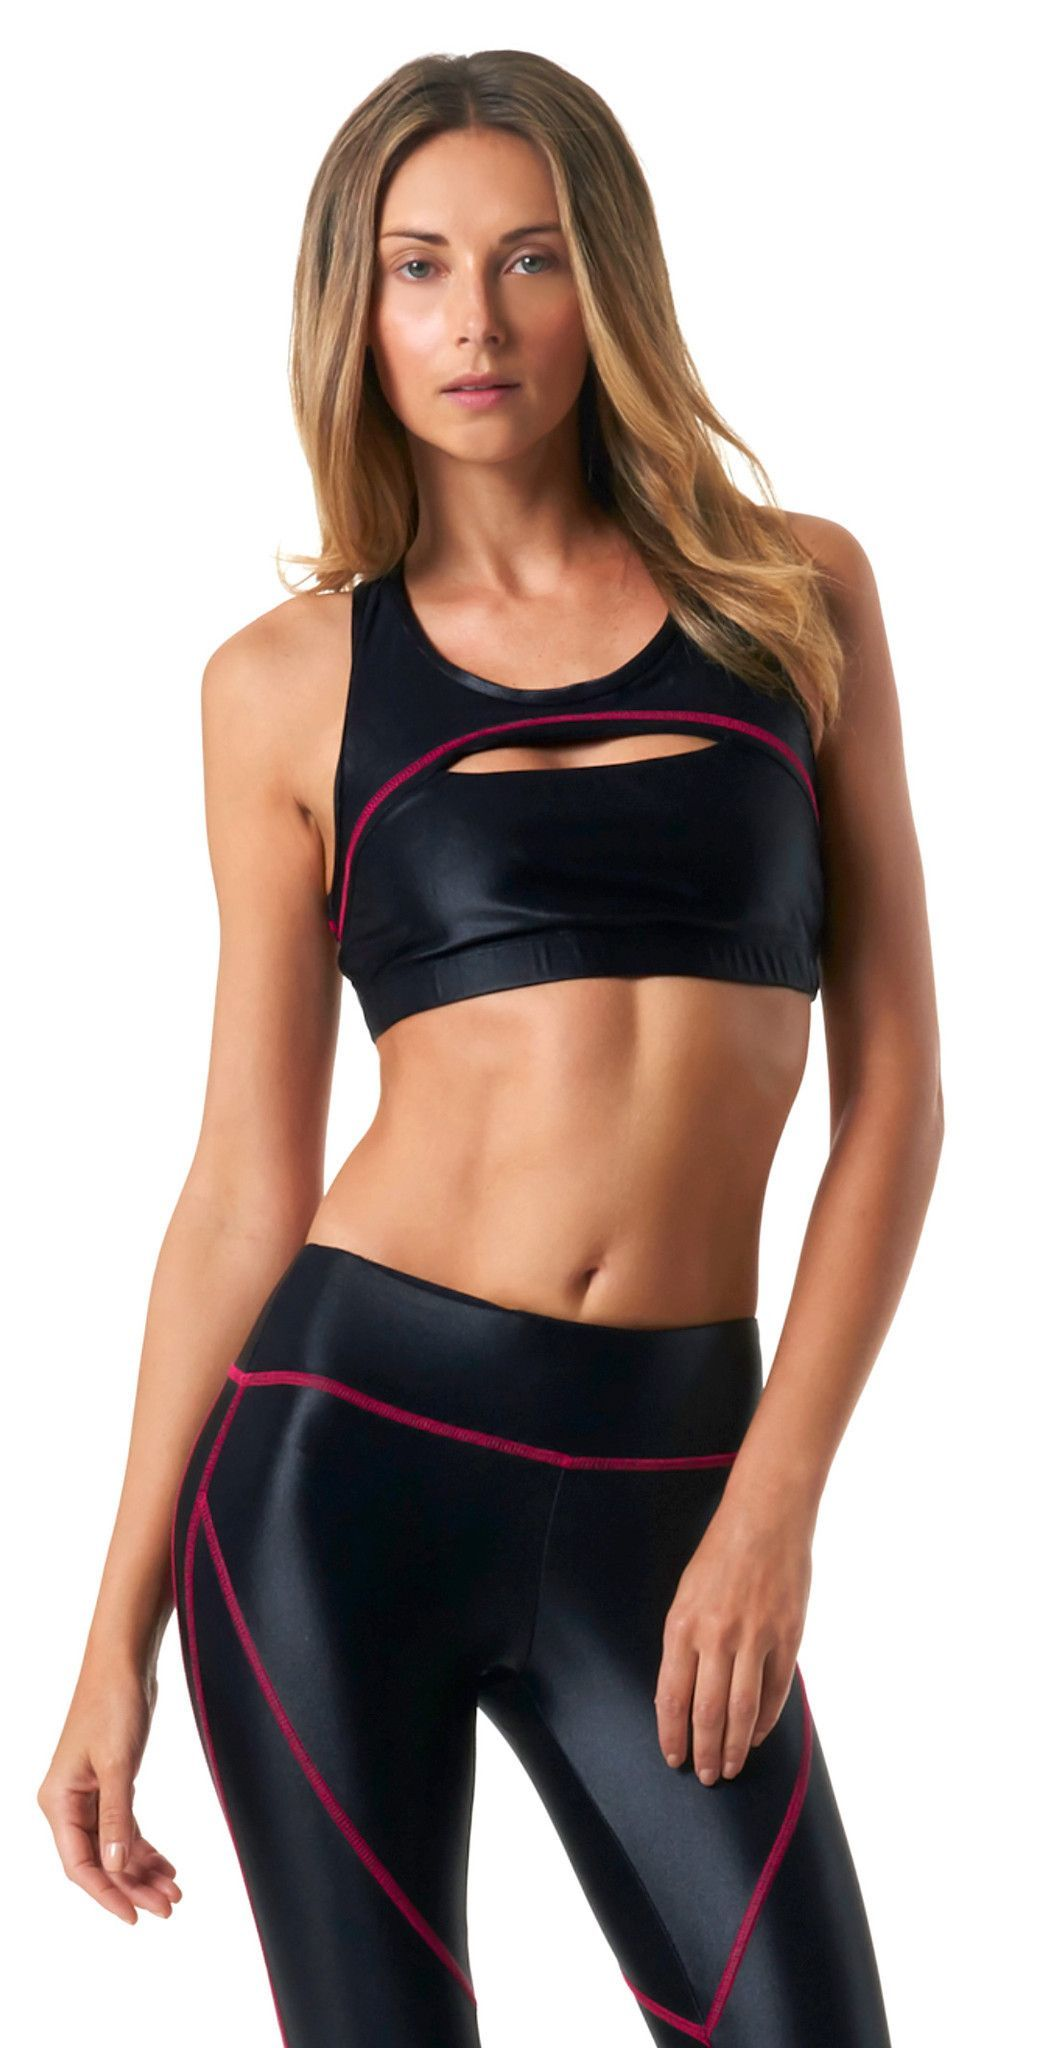 f4cece355b Summit Bra Cute workout clothes for women